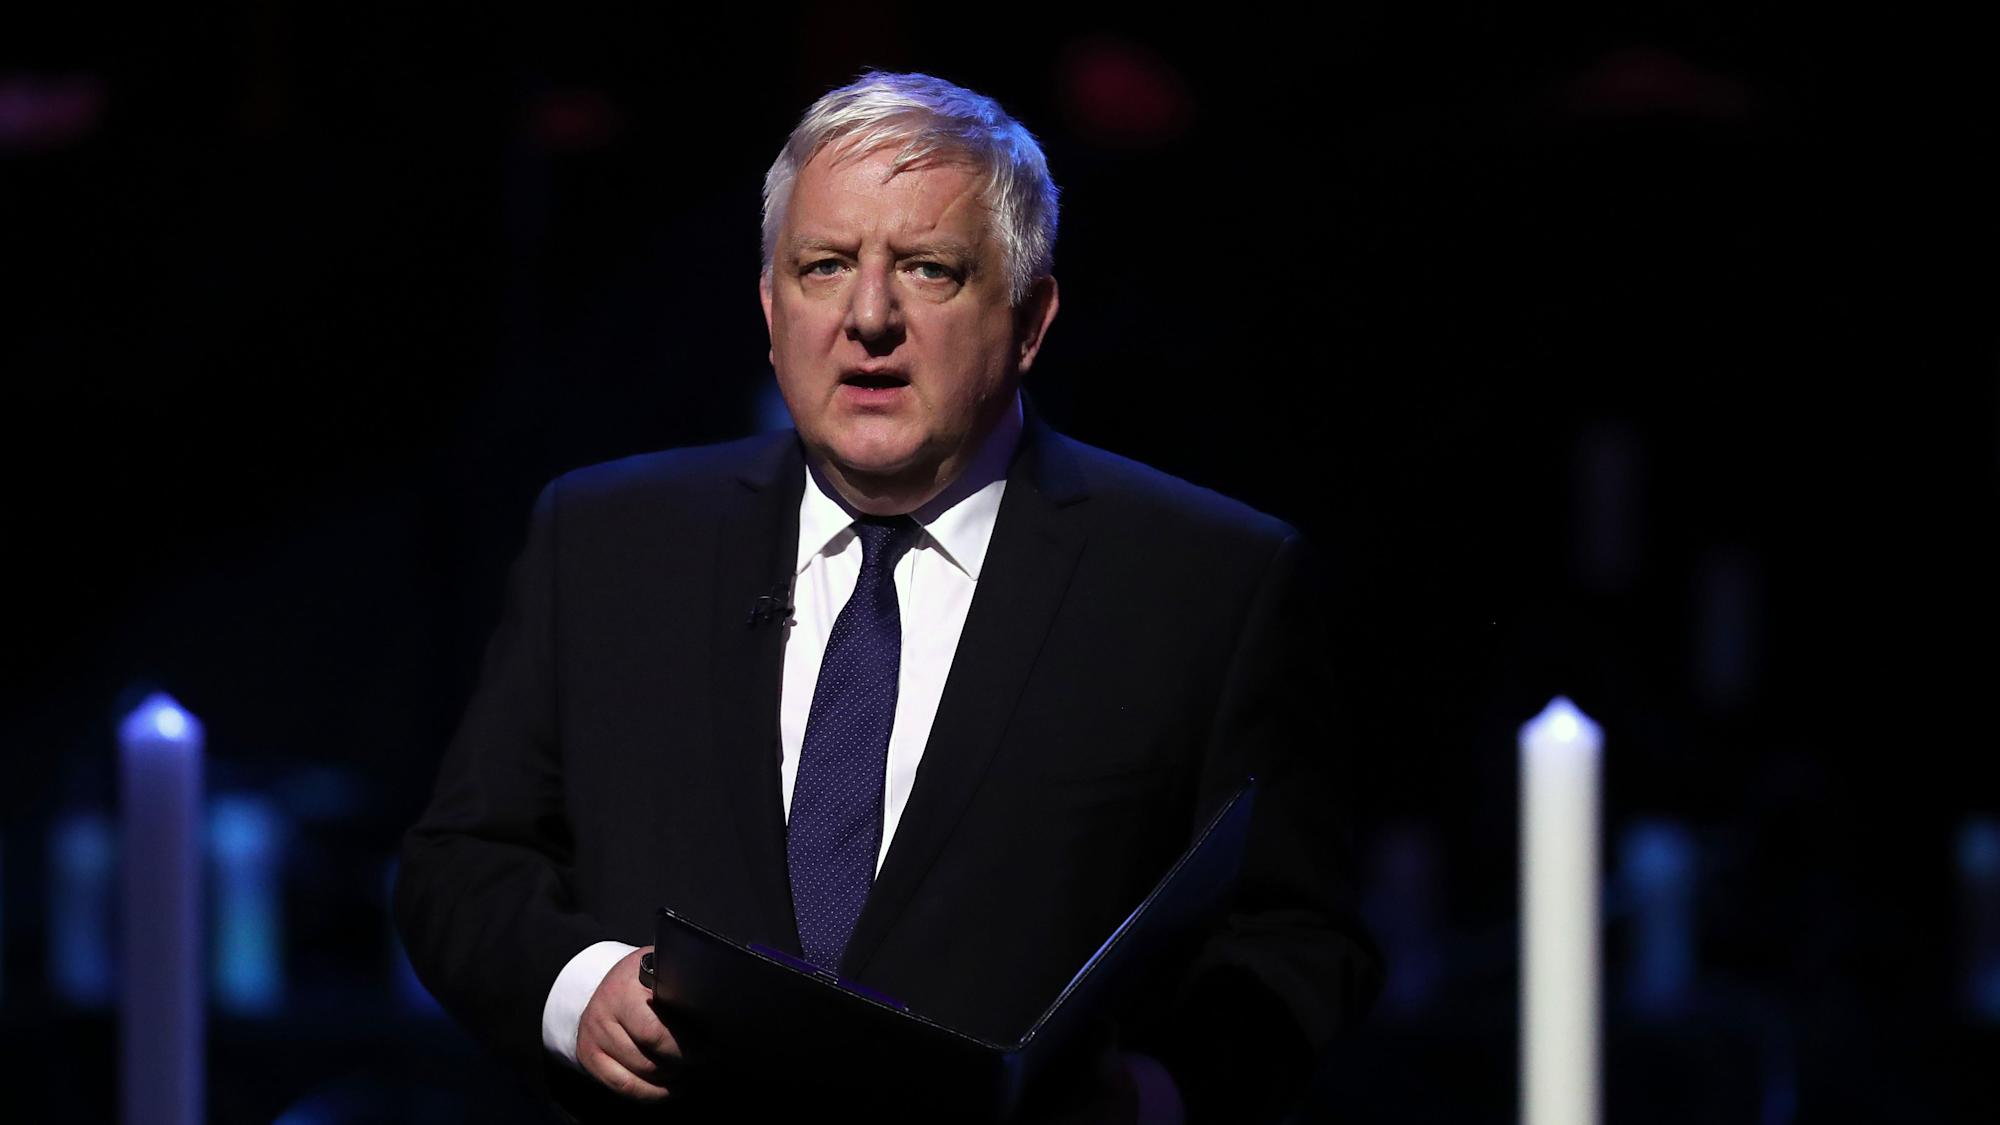 Sir Simon Russell Beale to play Bach in world premiere of new play